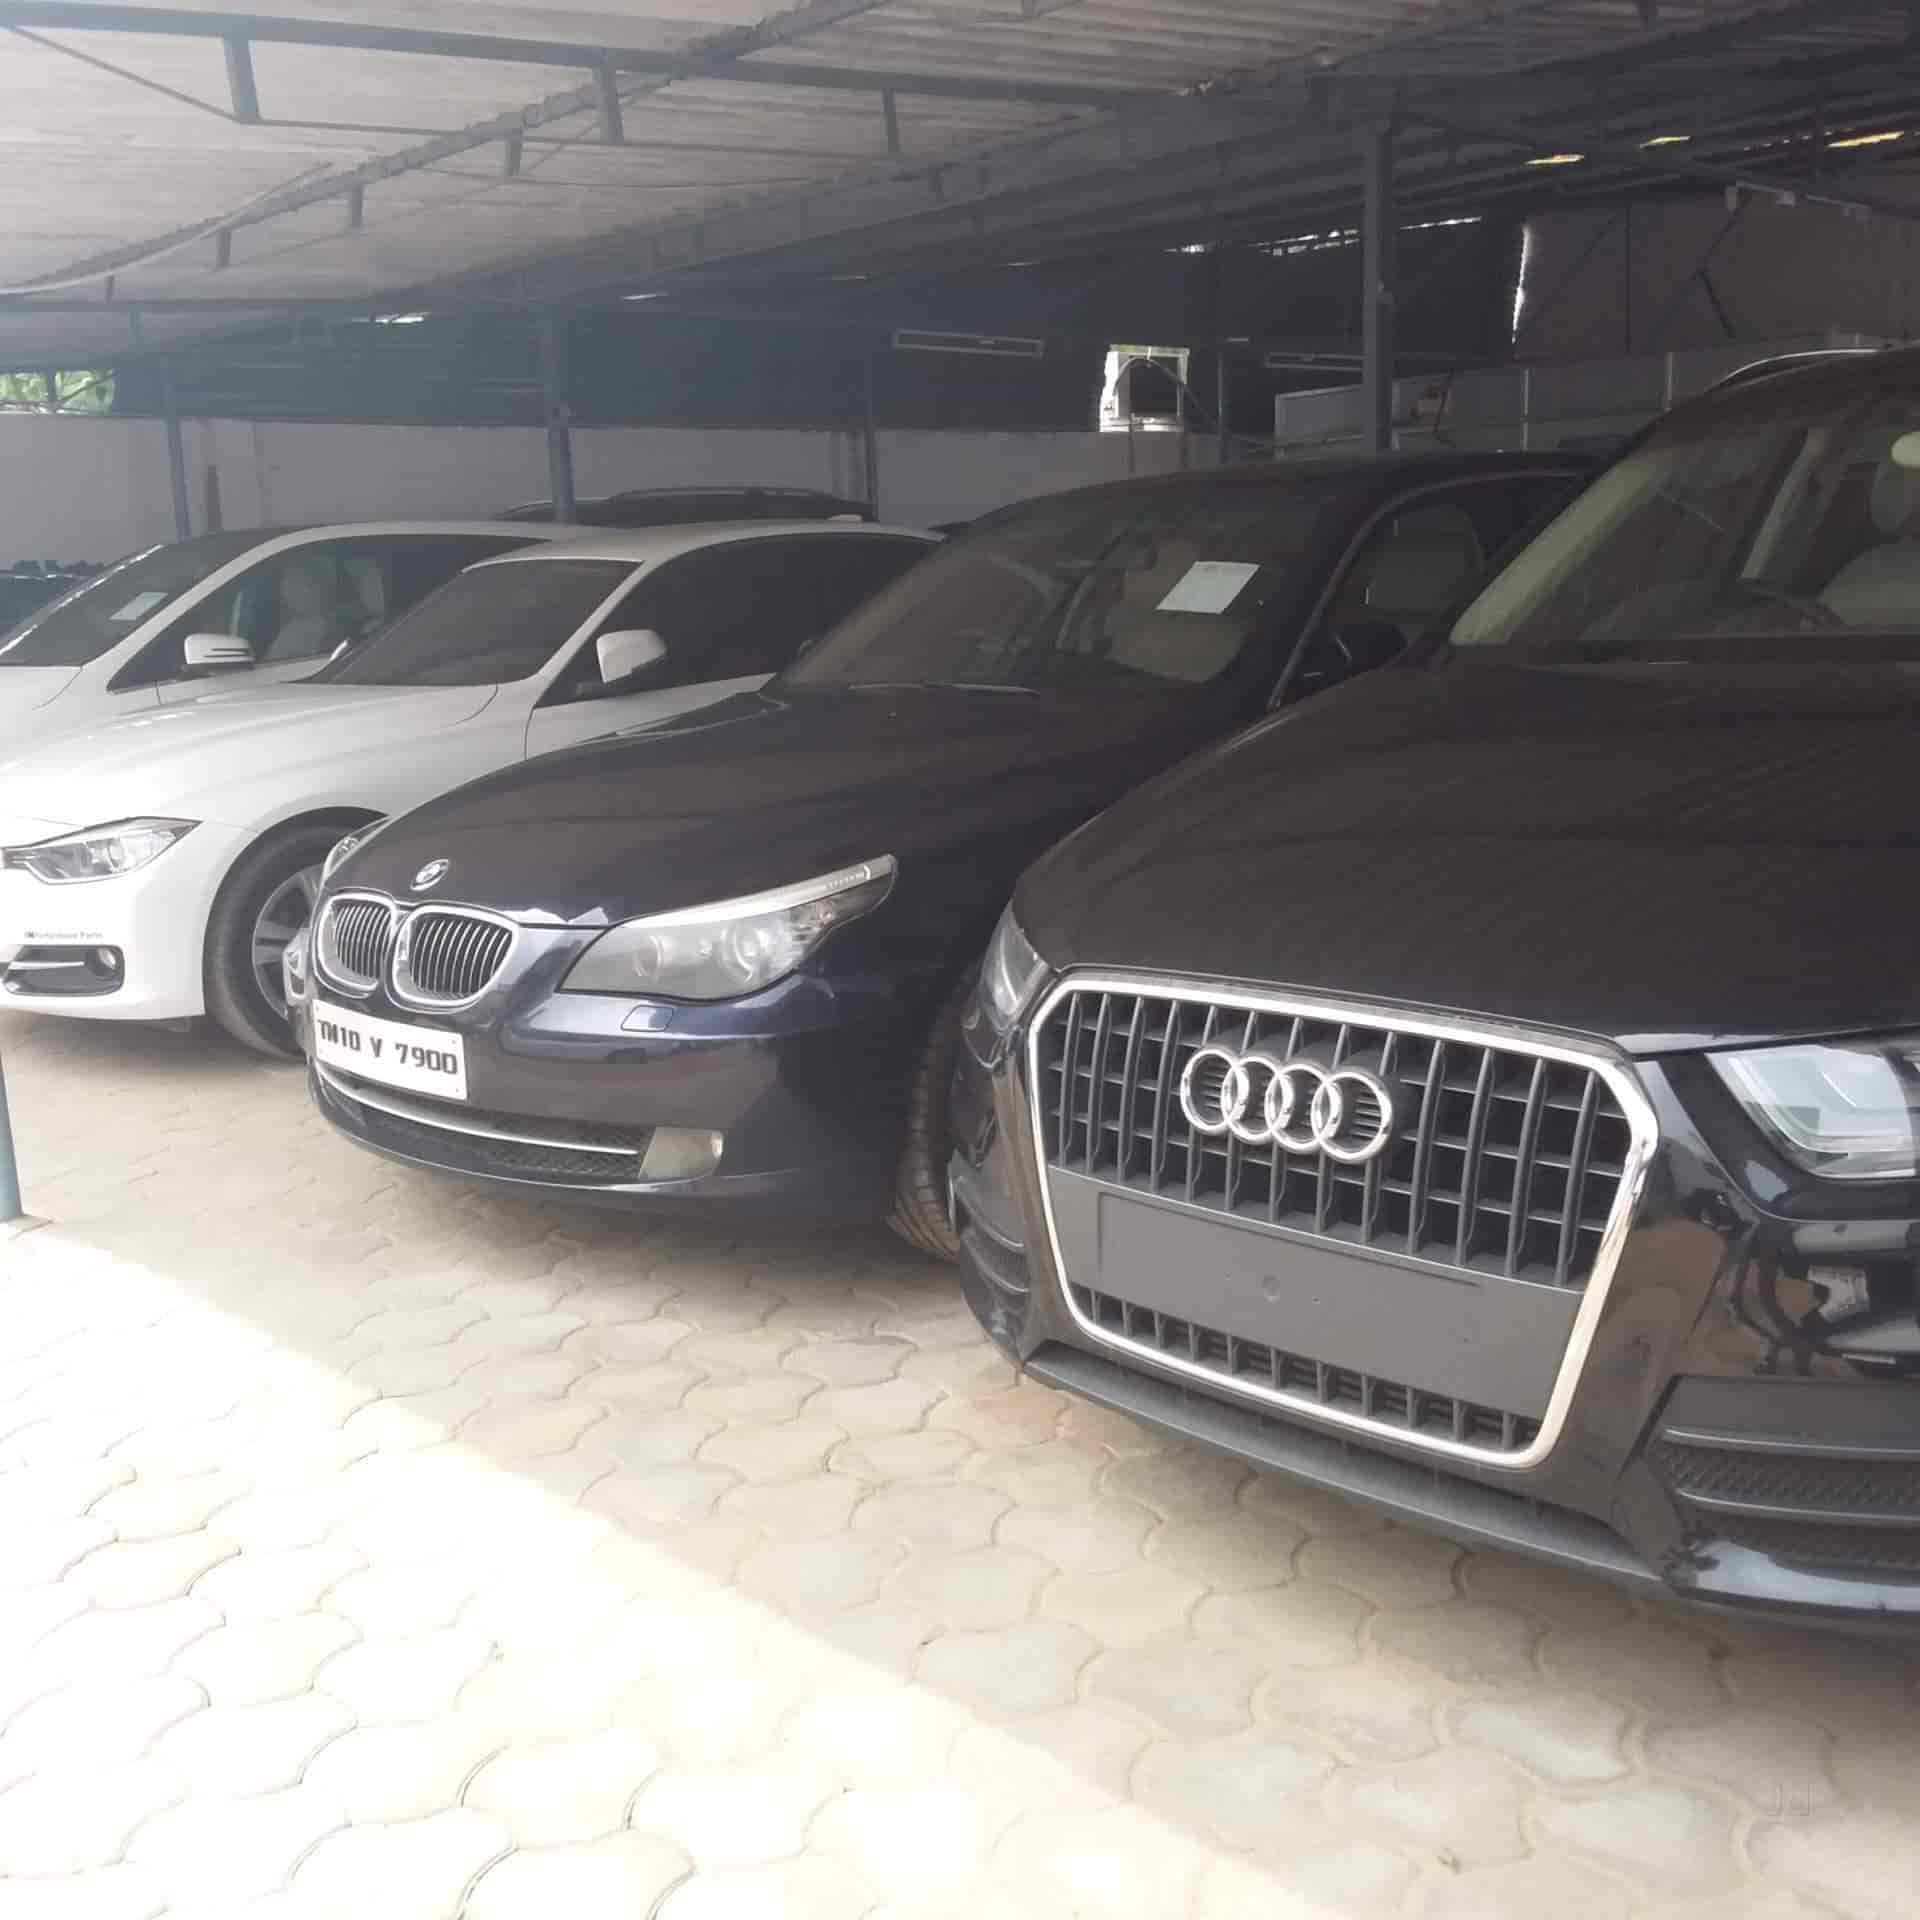 Big Boy Toyzz Collectorate Second Hand Car Dealers In Erode